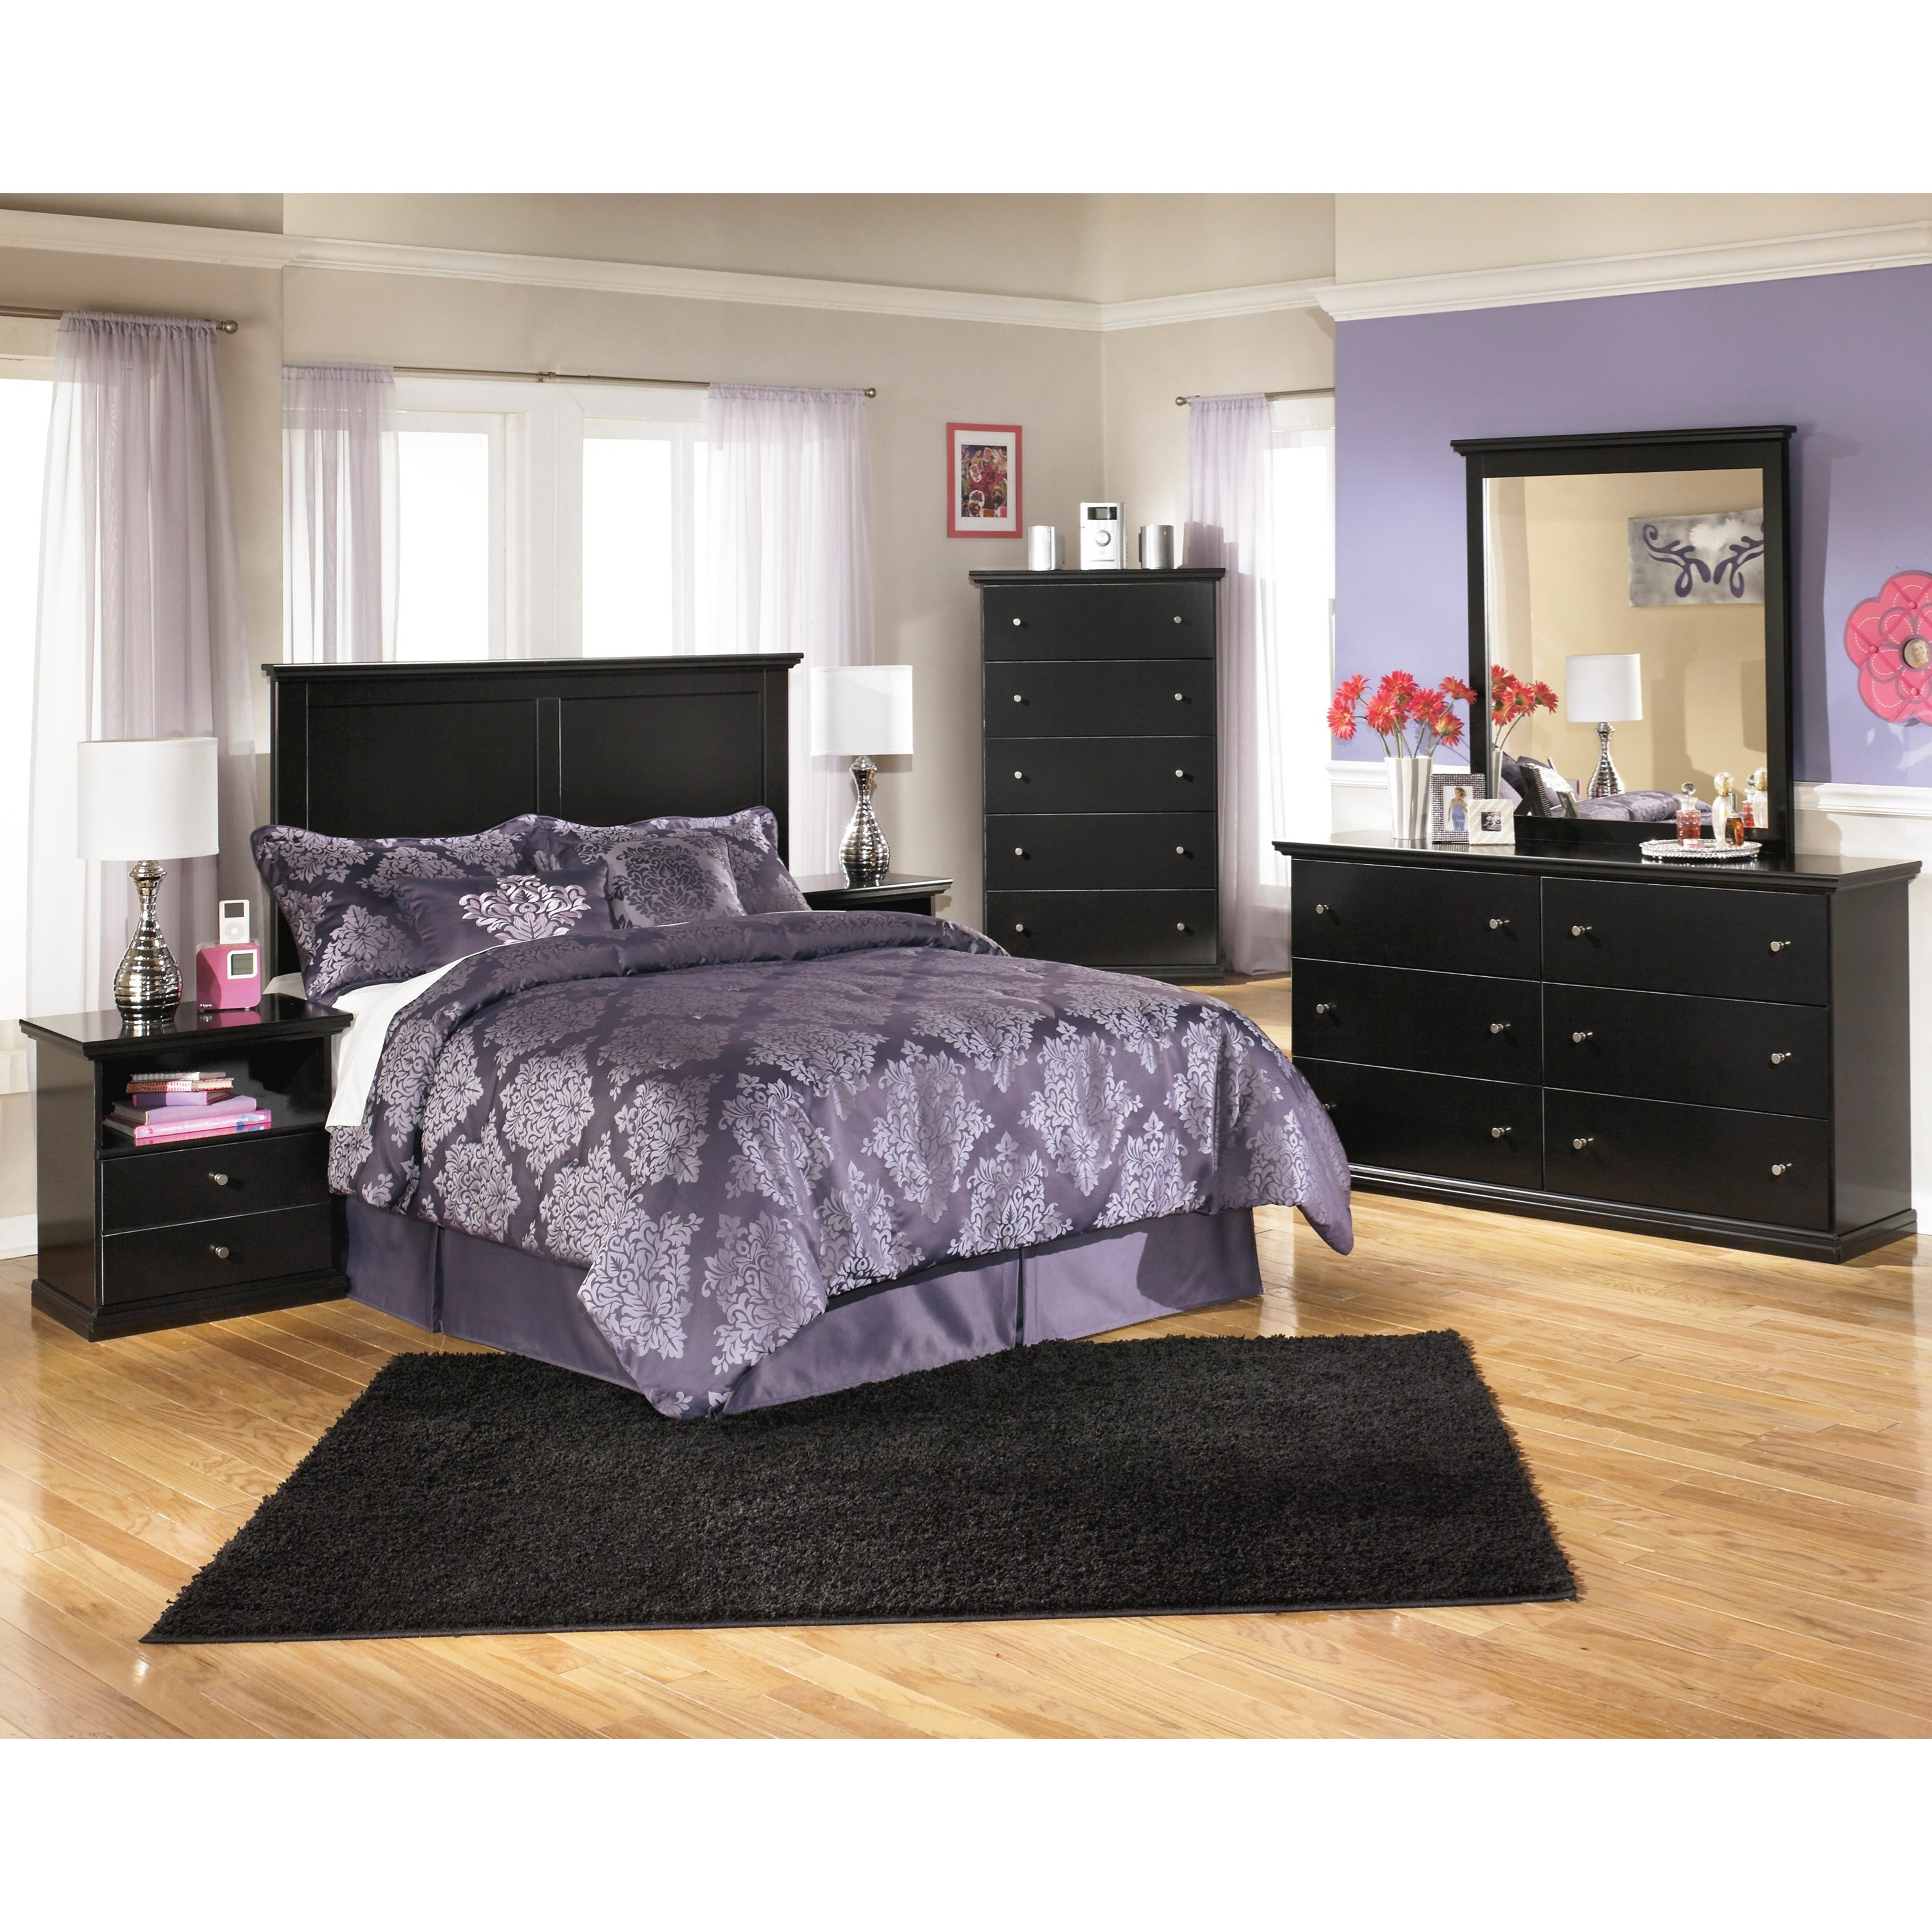 Maribel Twin Bedroom Group by Signature Design by Ashley at Zak's Warehouse Clearance Center